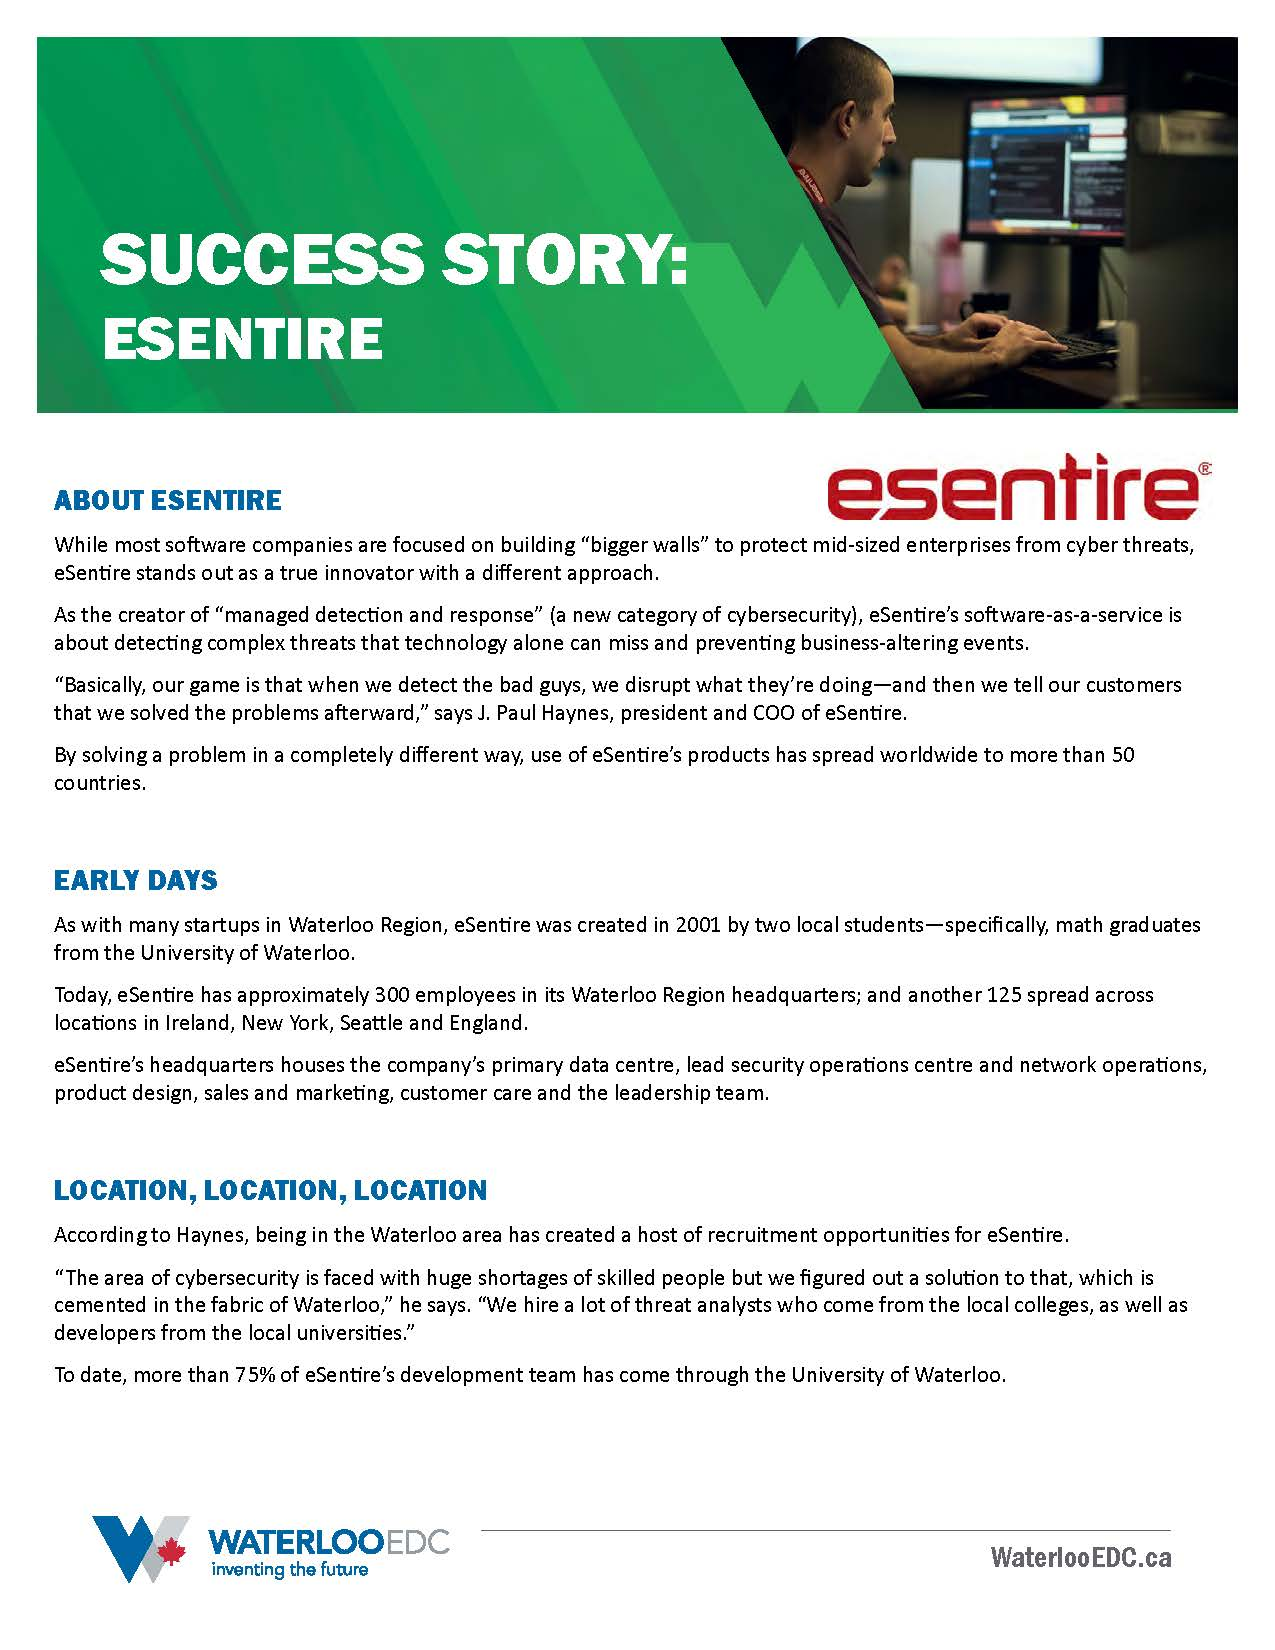 Success story: eSentire